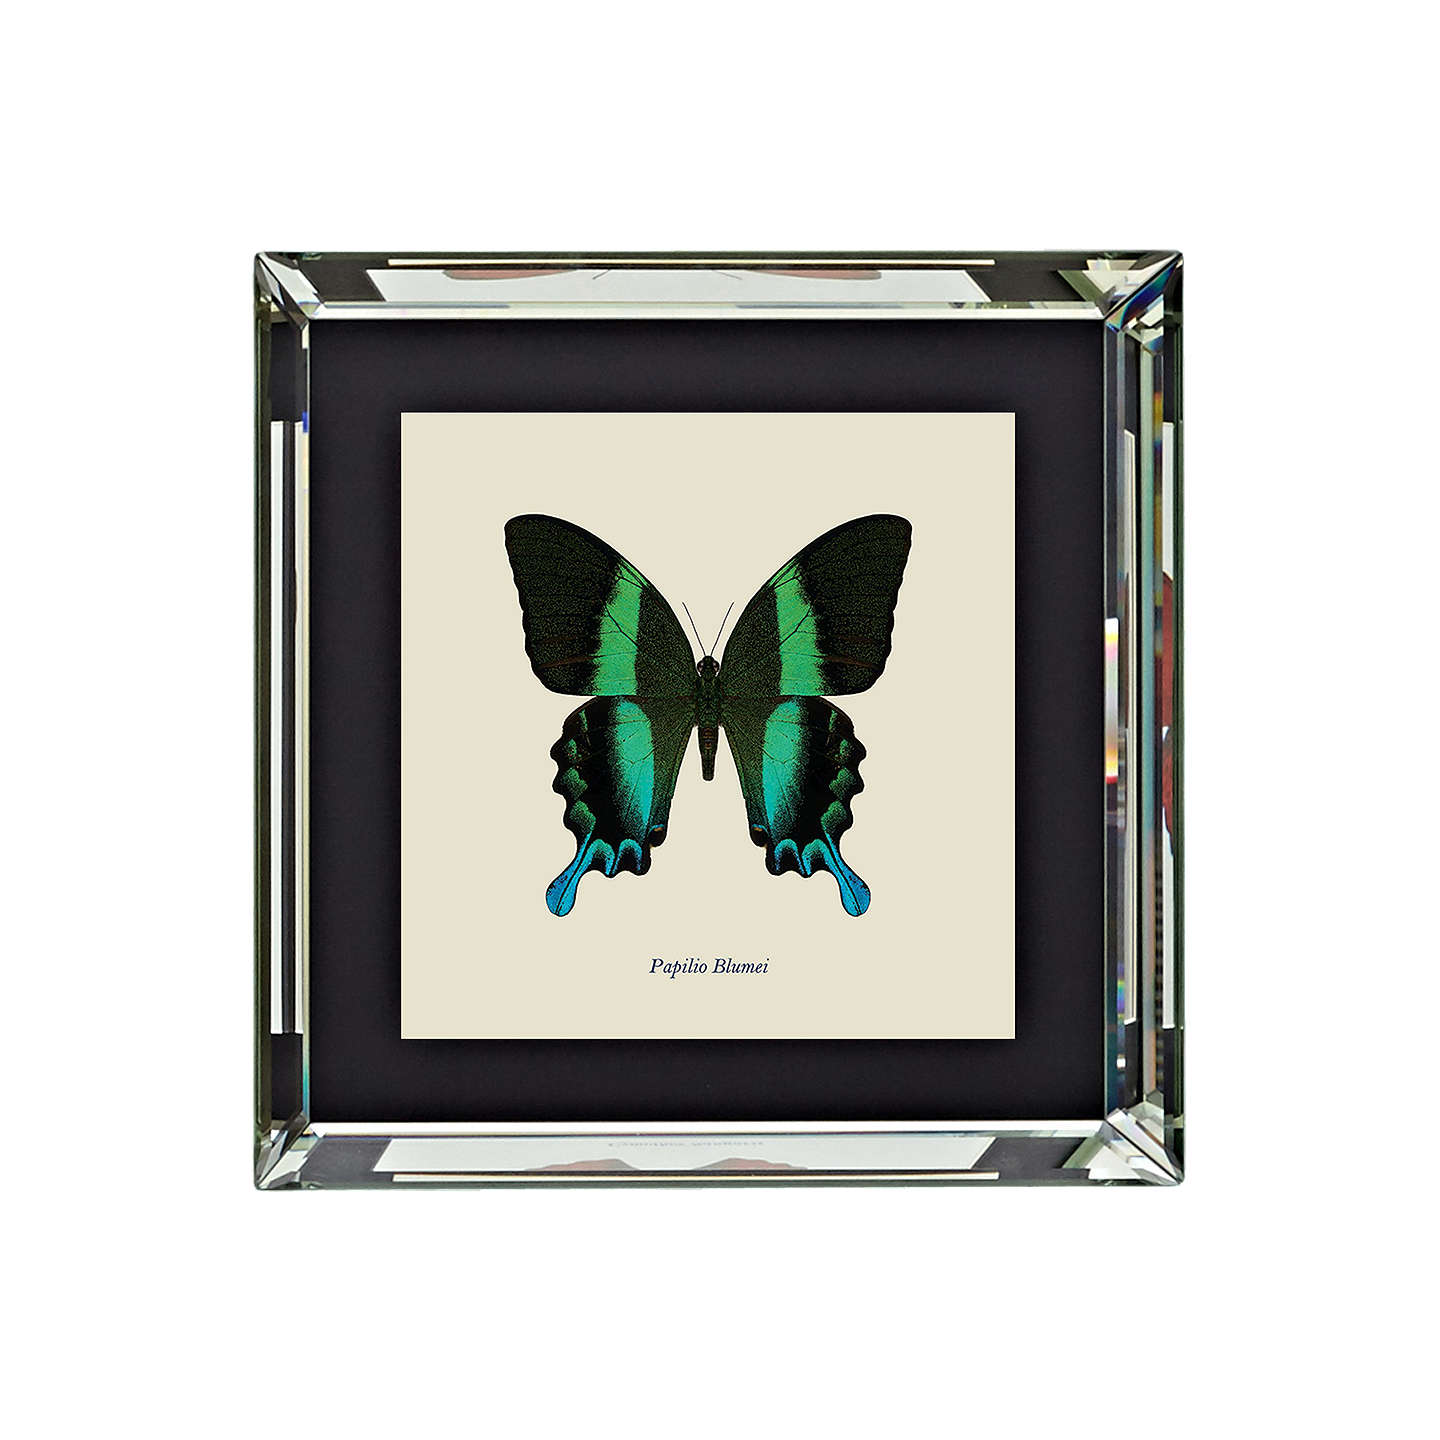 BuyBrookpace, Entomology Collection - Papilio Blumei Framed Print, 46 x 46cm Online at johnlewis.com